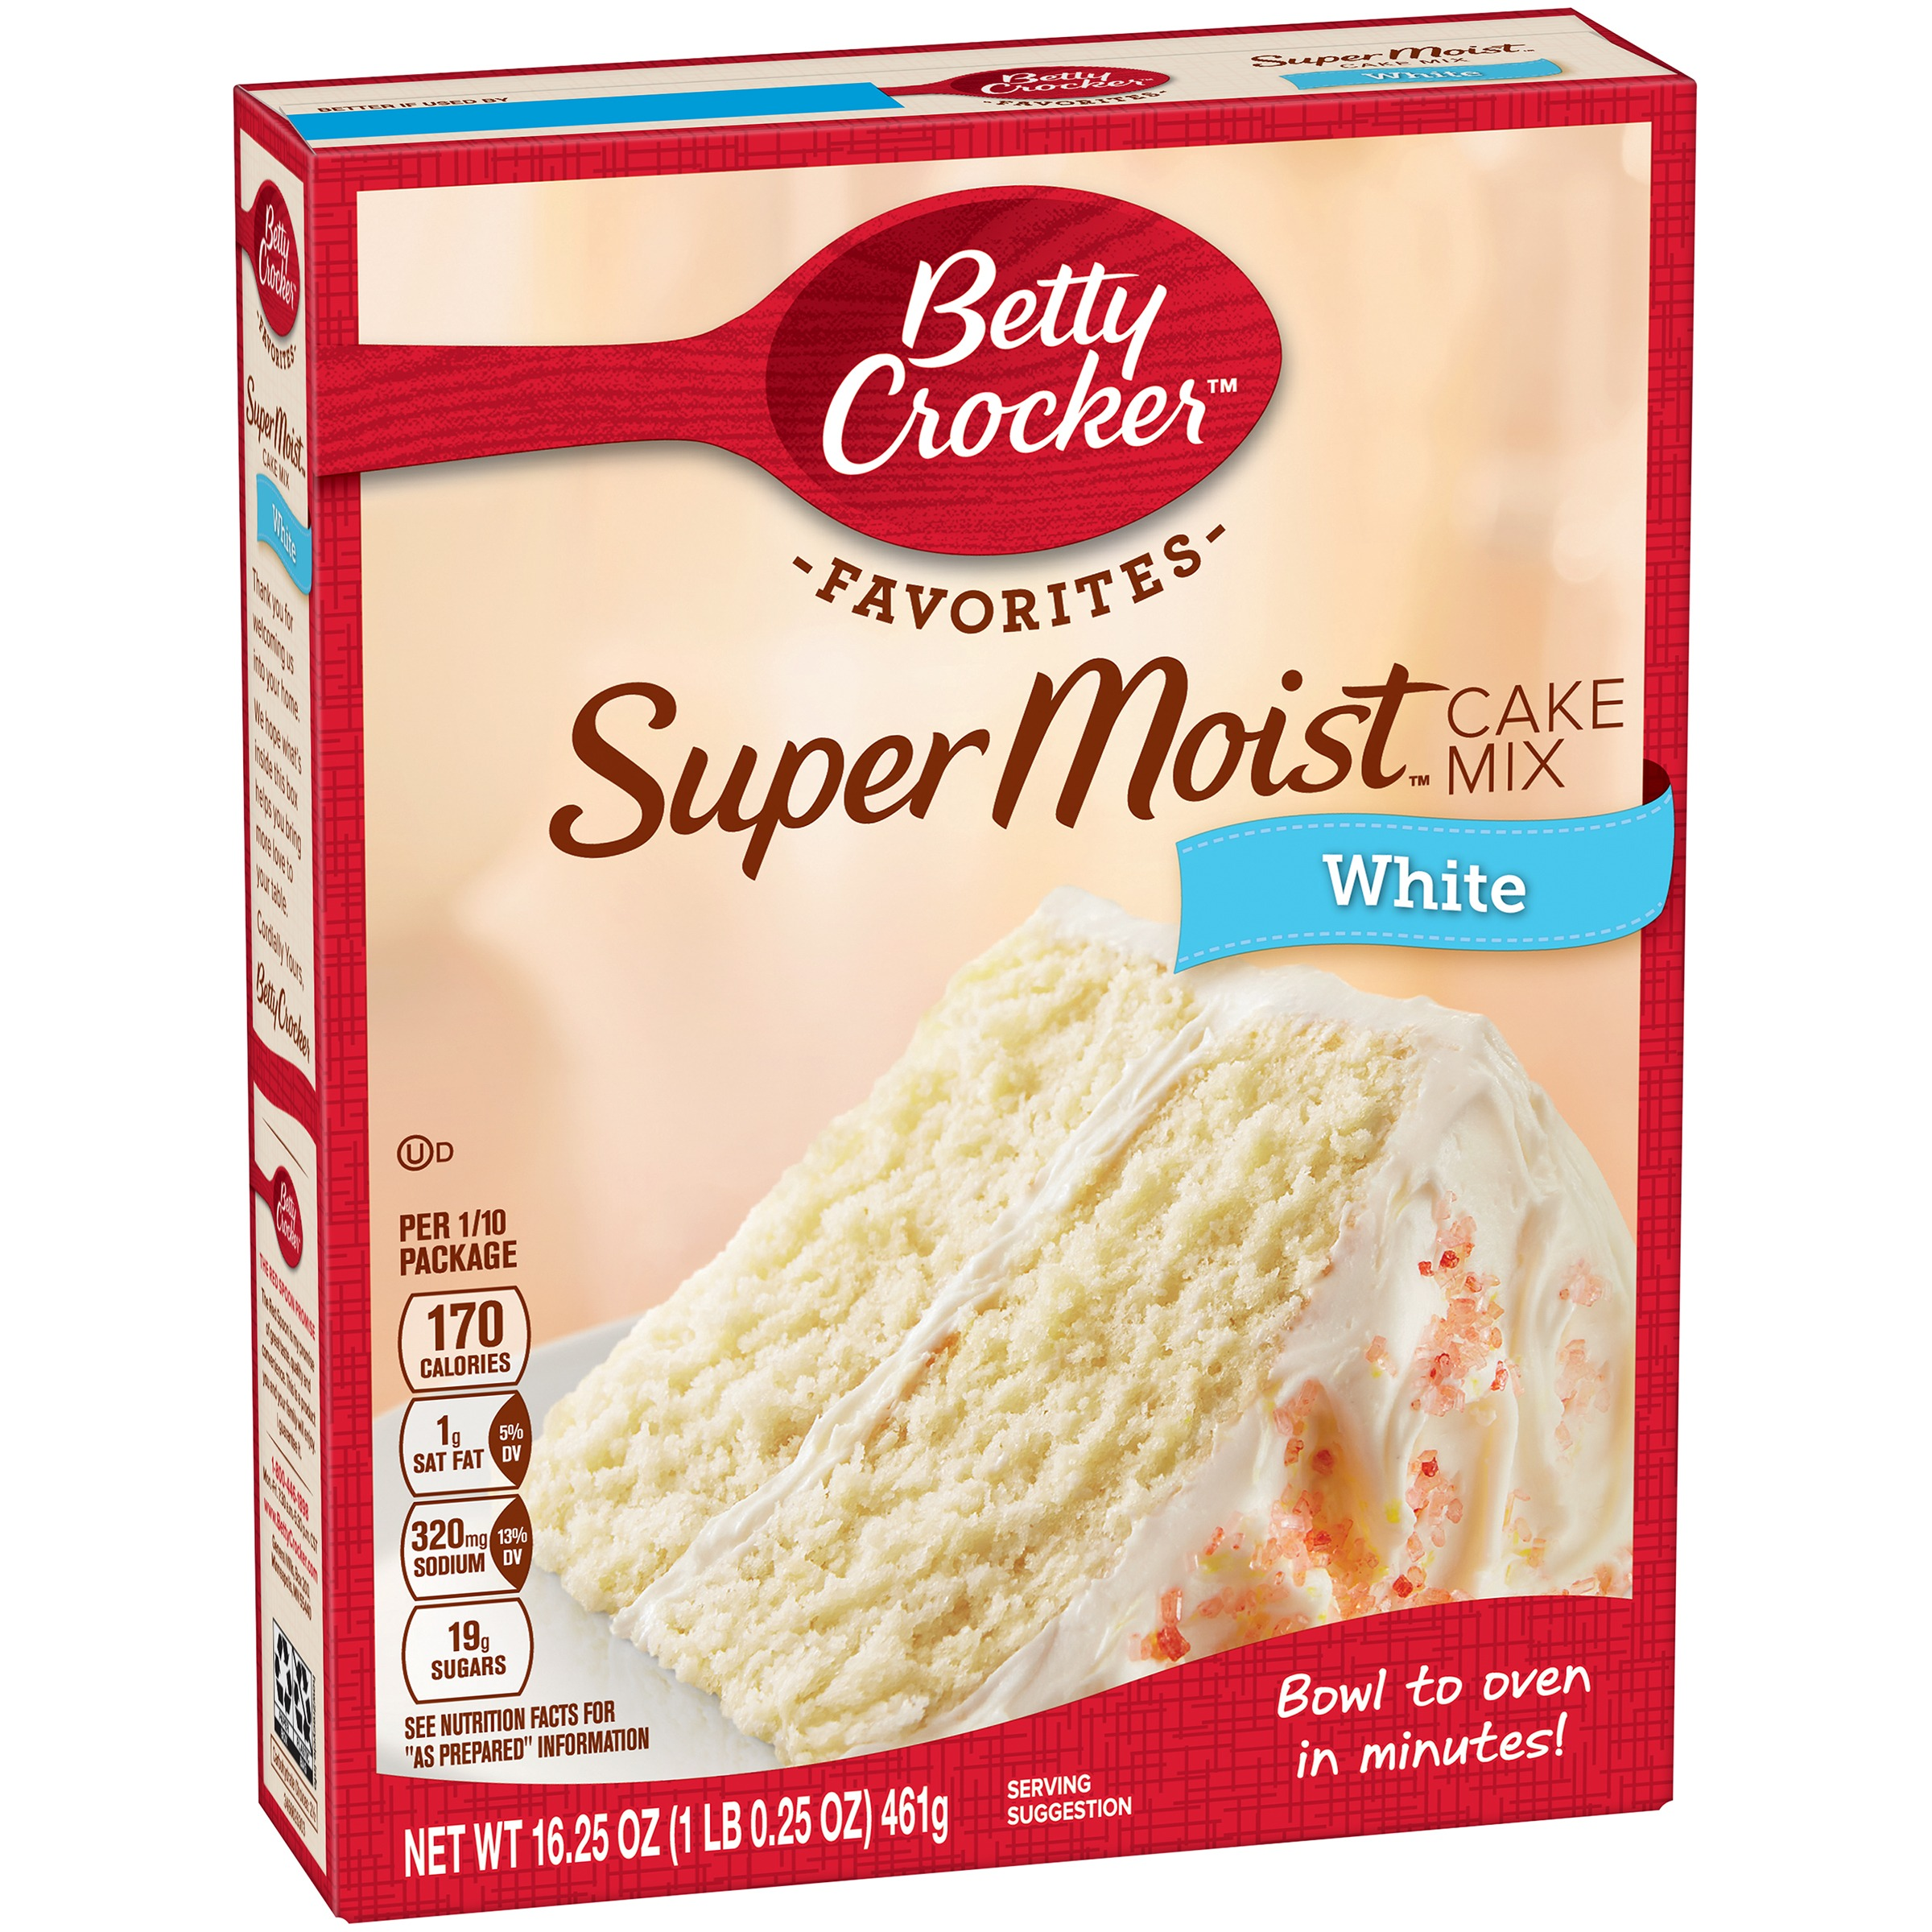 Betty Crocker White Cake Mix, 18.25 oz by General Mills Sales, Inc.